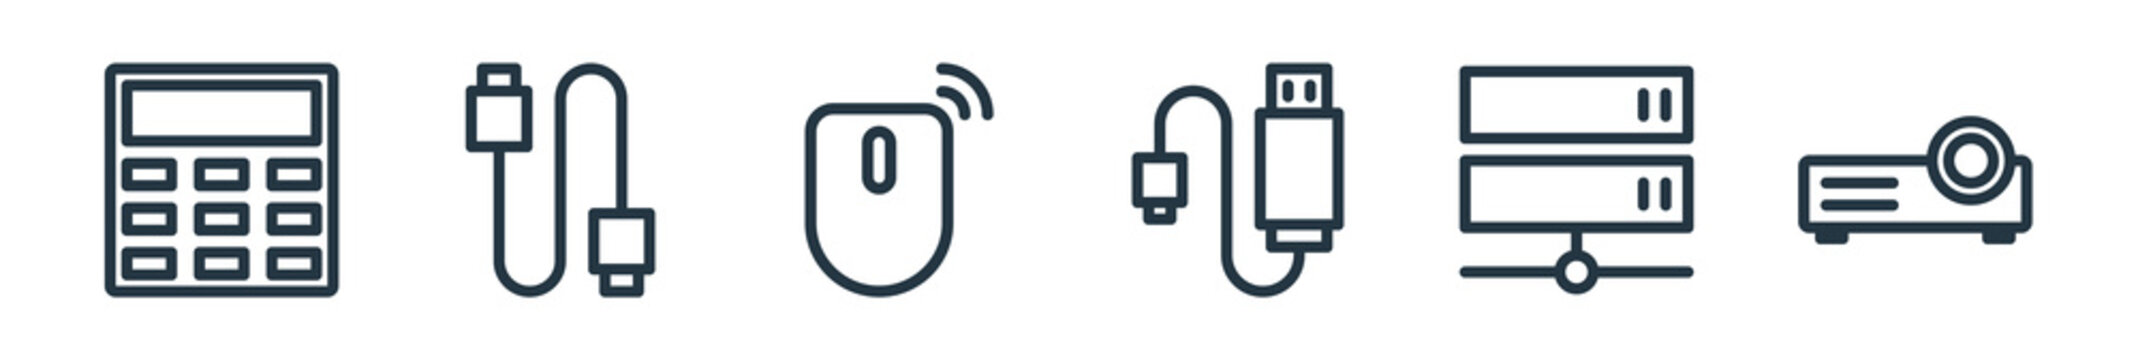 outline set of technology line icons. linear vector icons such as calculator, cable, mouse, usb cable, server, video projection. vector illustration.